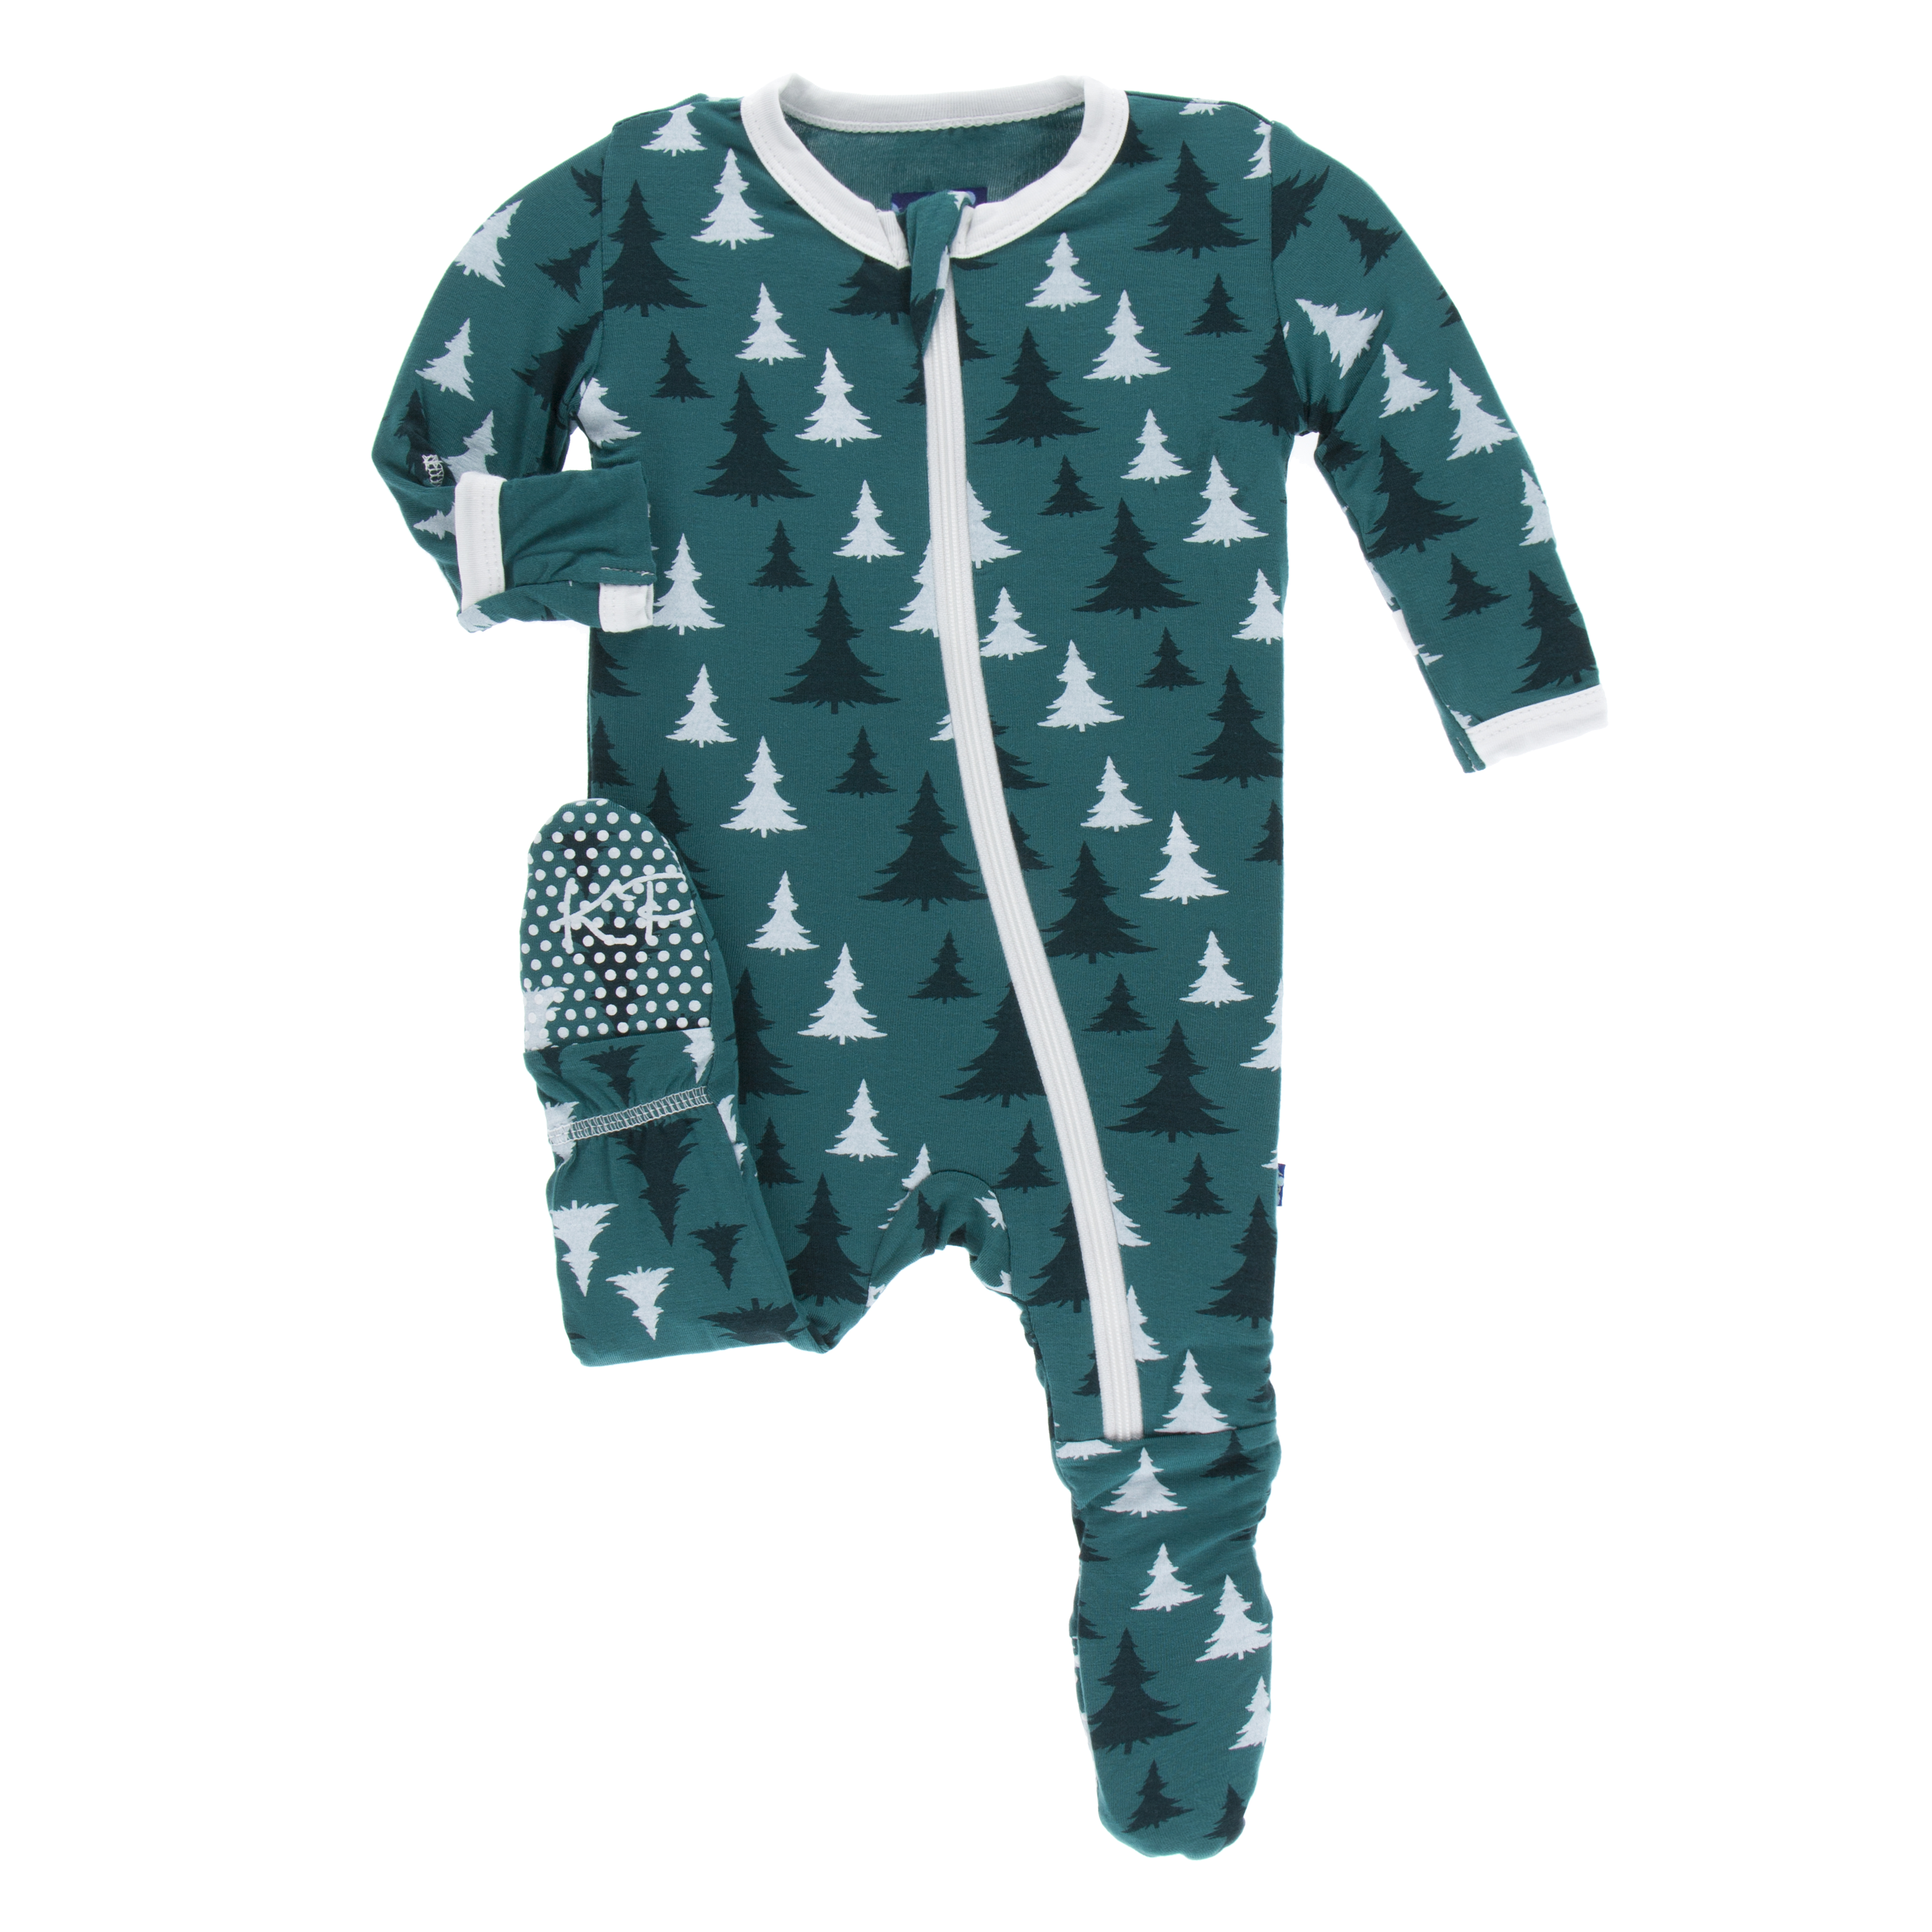 Toddler Boy Footie Wzipper Cedar Christmas Tree